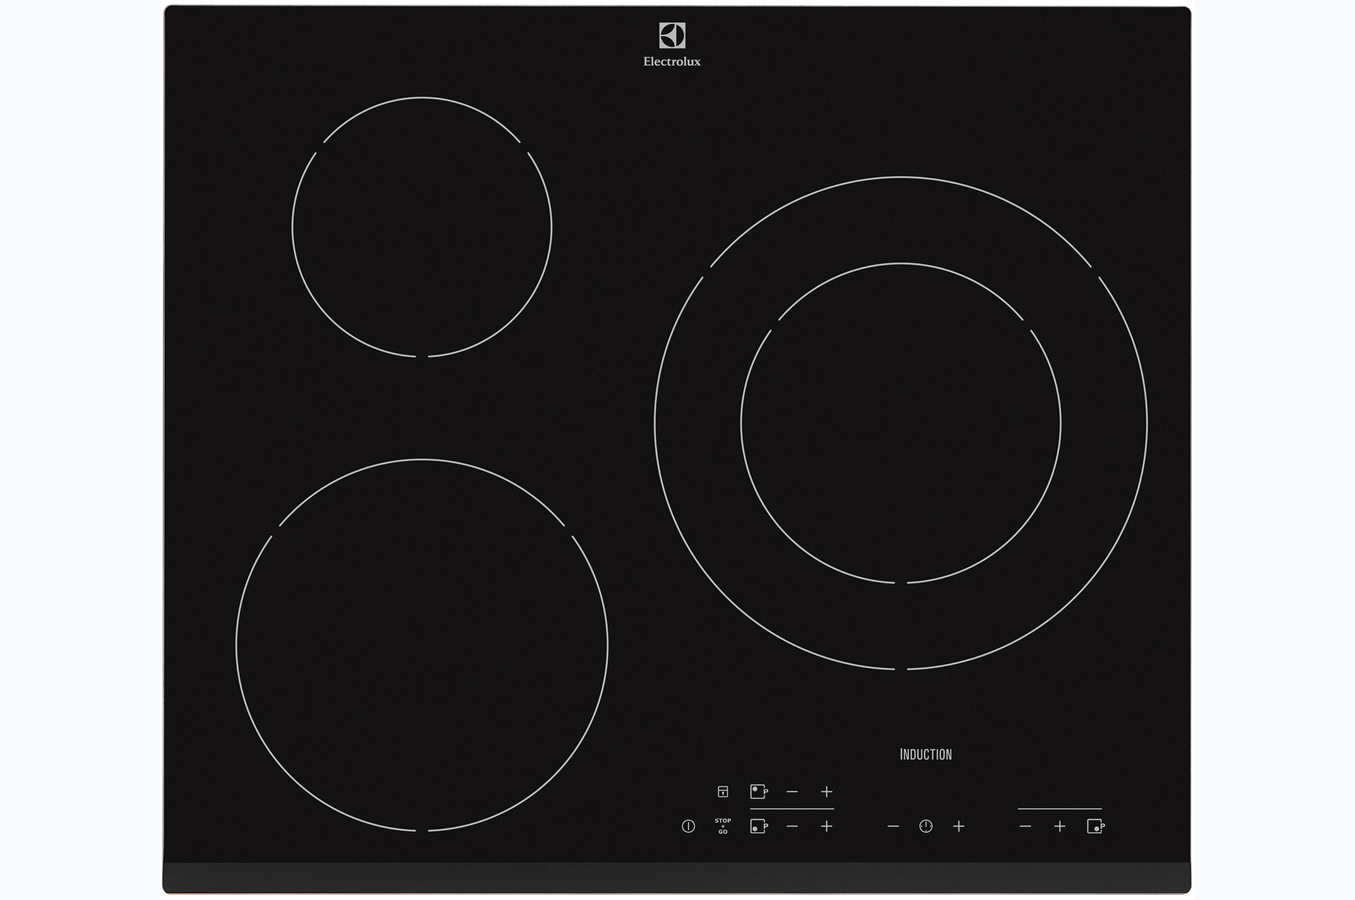 Plaque induction electrolux e6223hfk 3851494 darty - Four plaque de cuisson ...